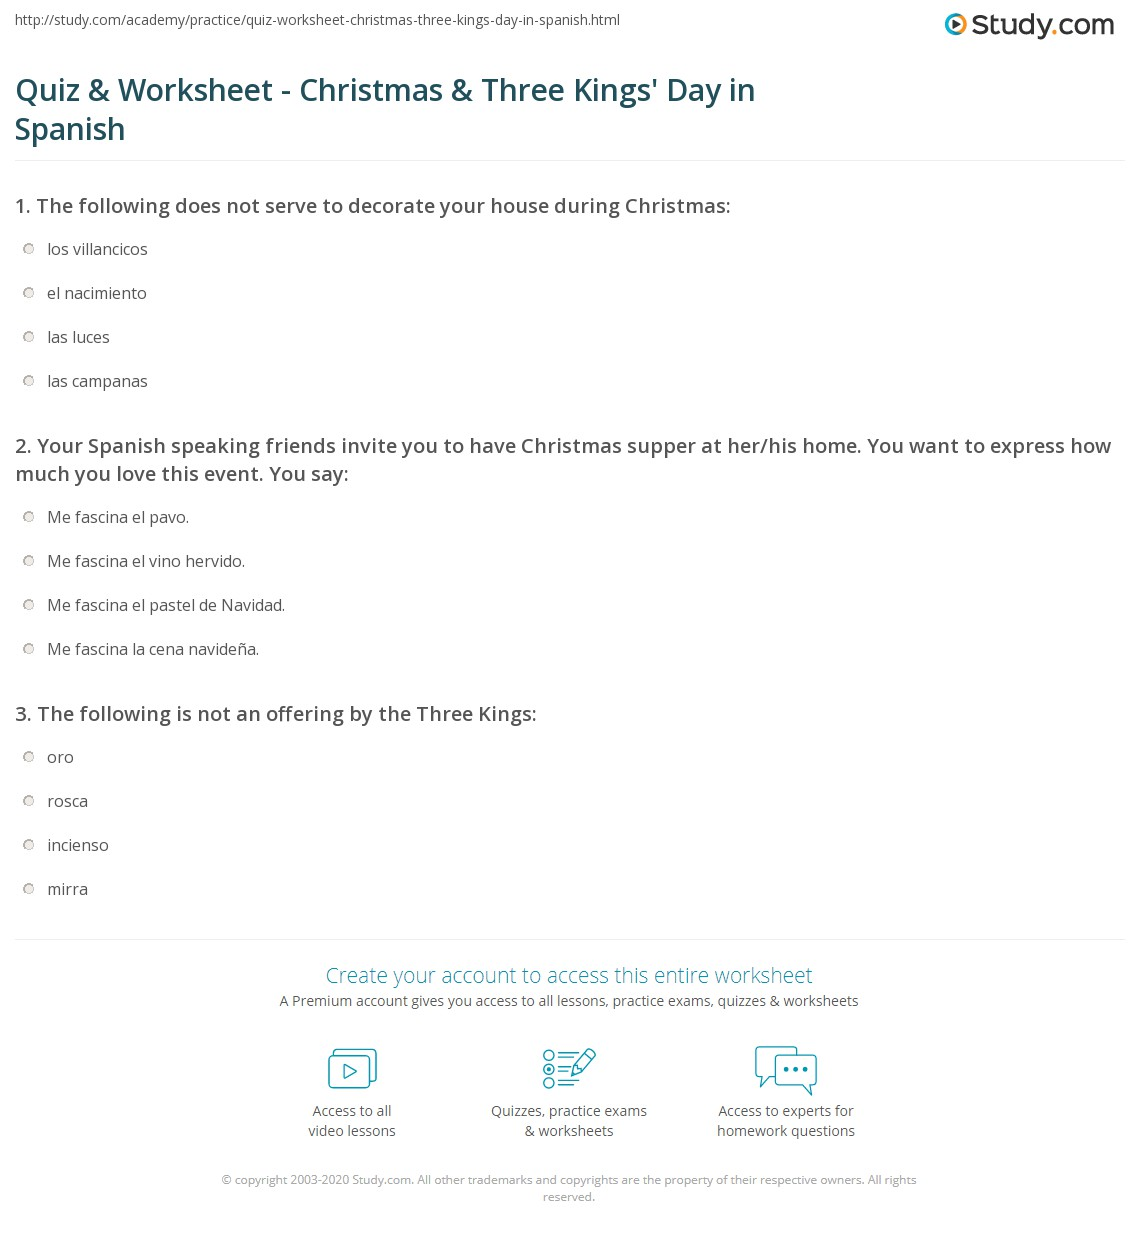 Quiz & Worksheet - Christmas & Three Kings' Day in Spanish